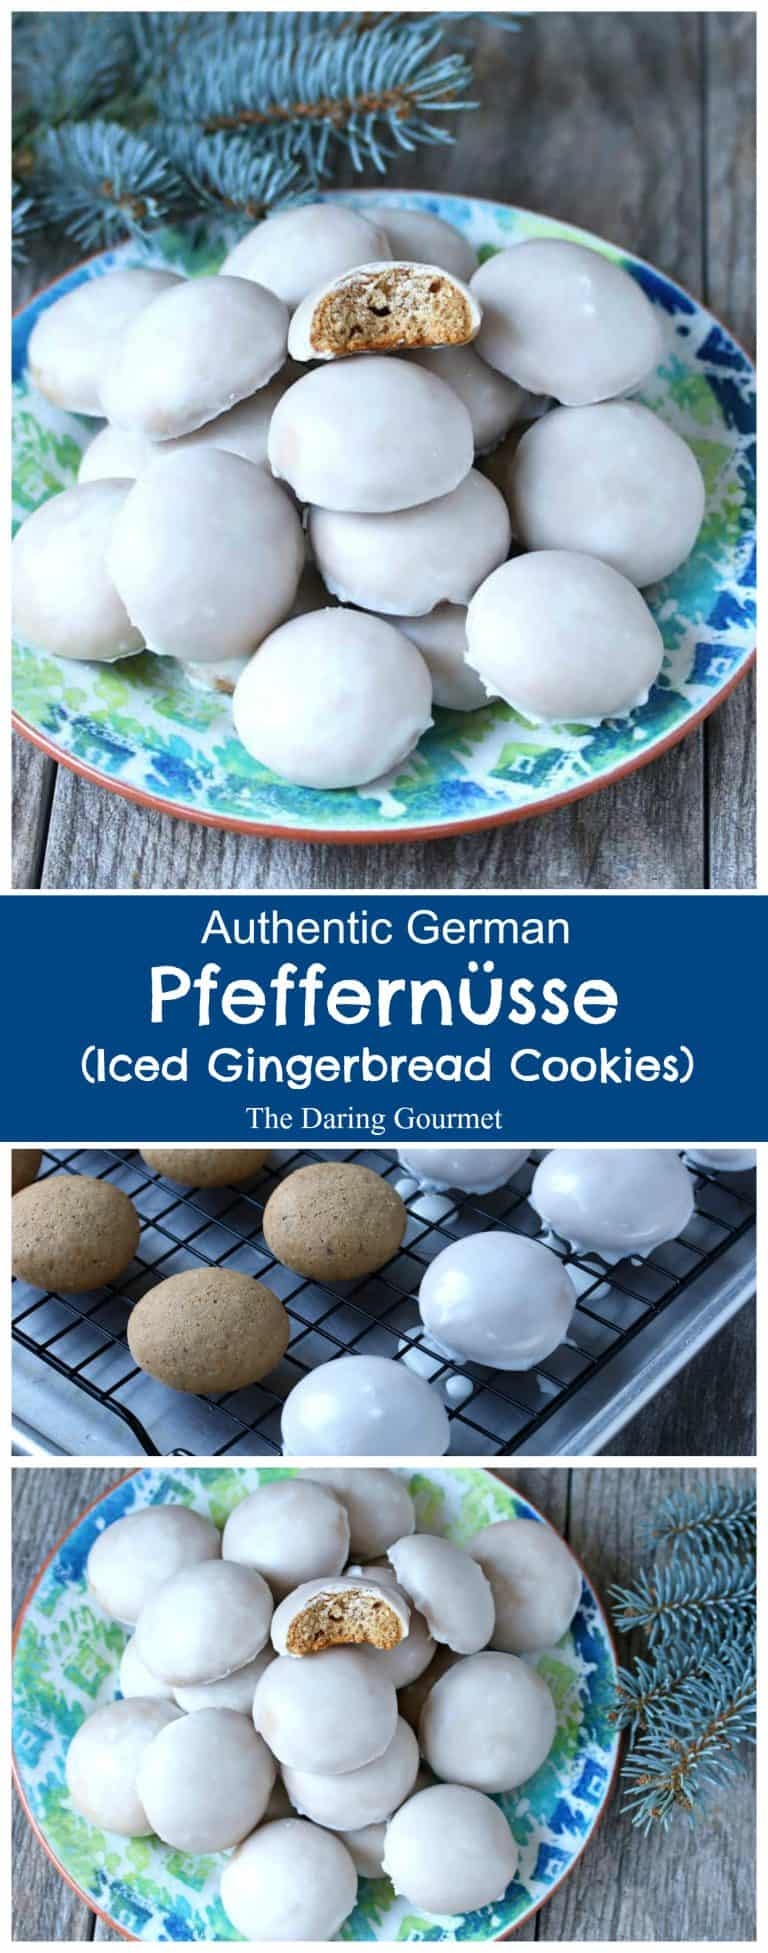 pfeffernusse recipe traditional authentic German iced gingerbread cookies pfeffernüsse rezept